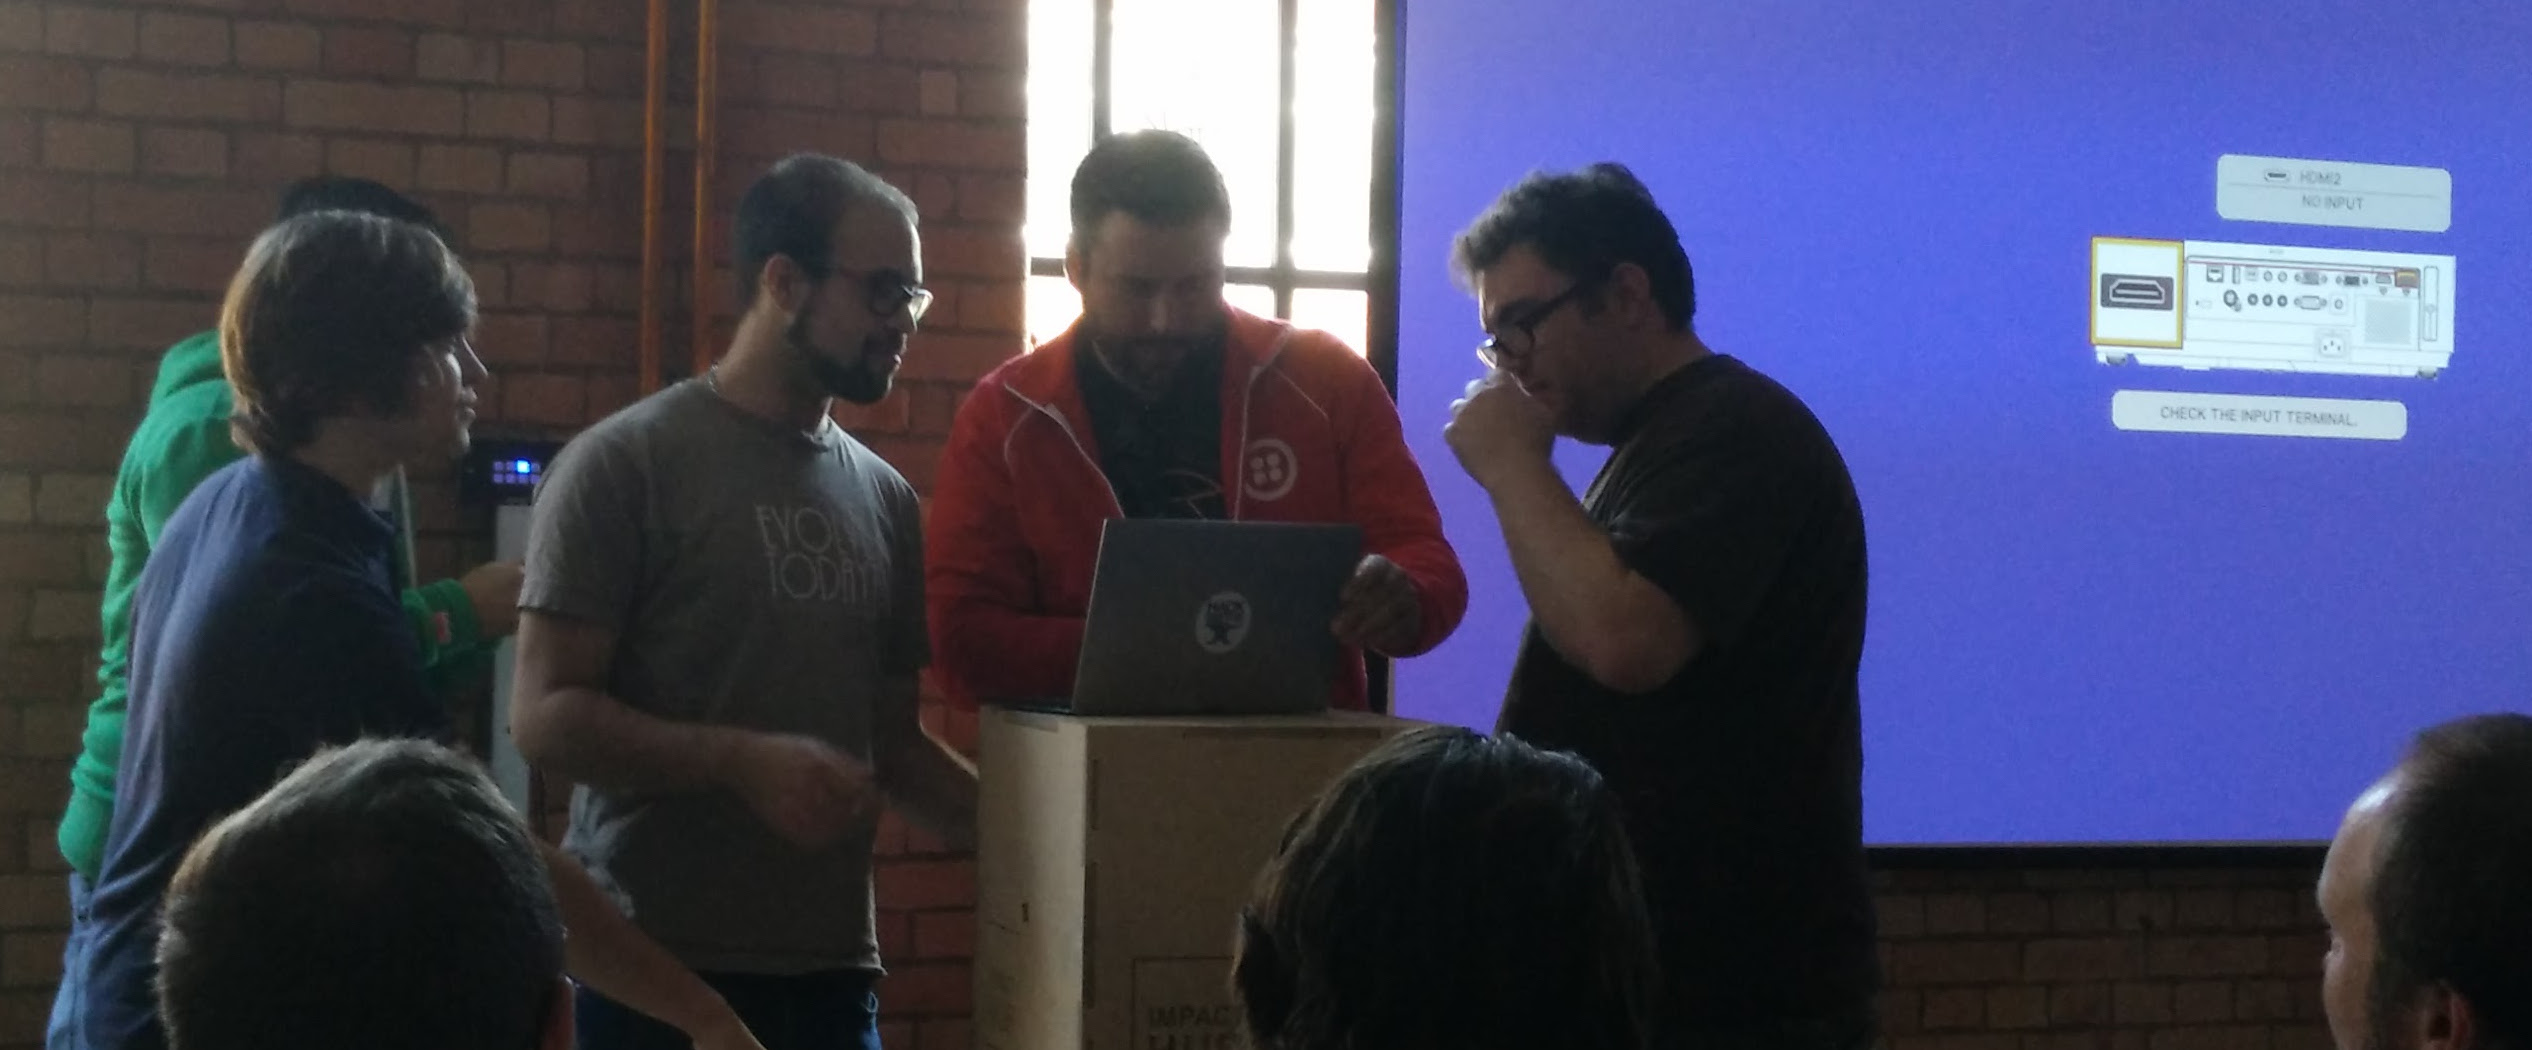 How many developers does it take to hook up a projector?